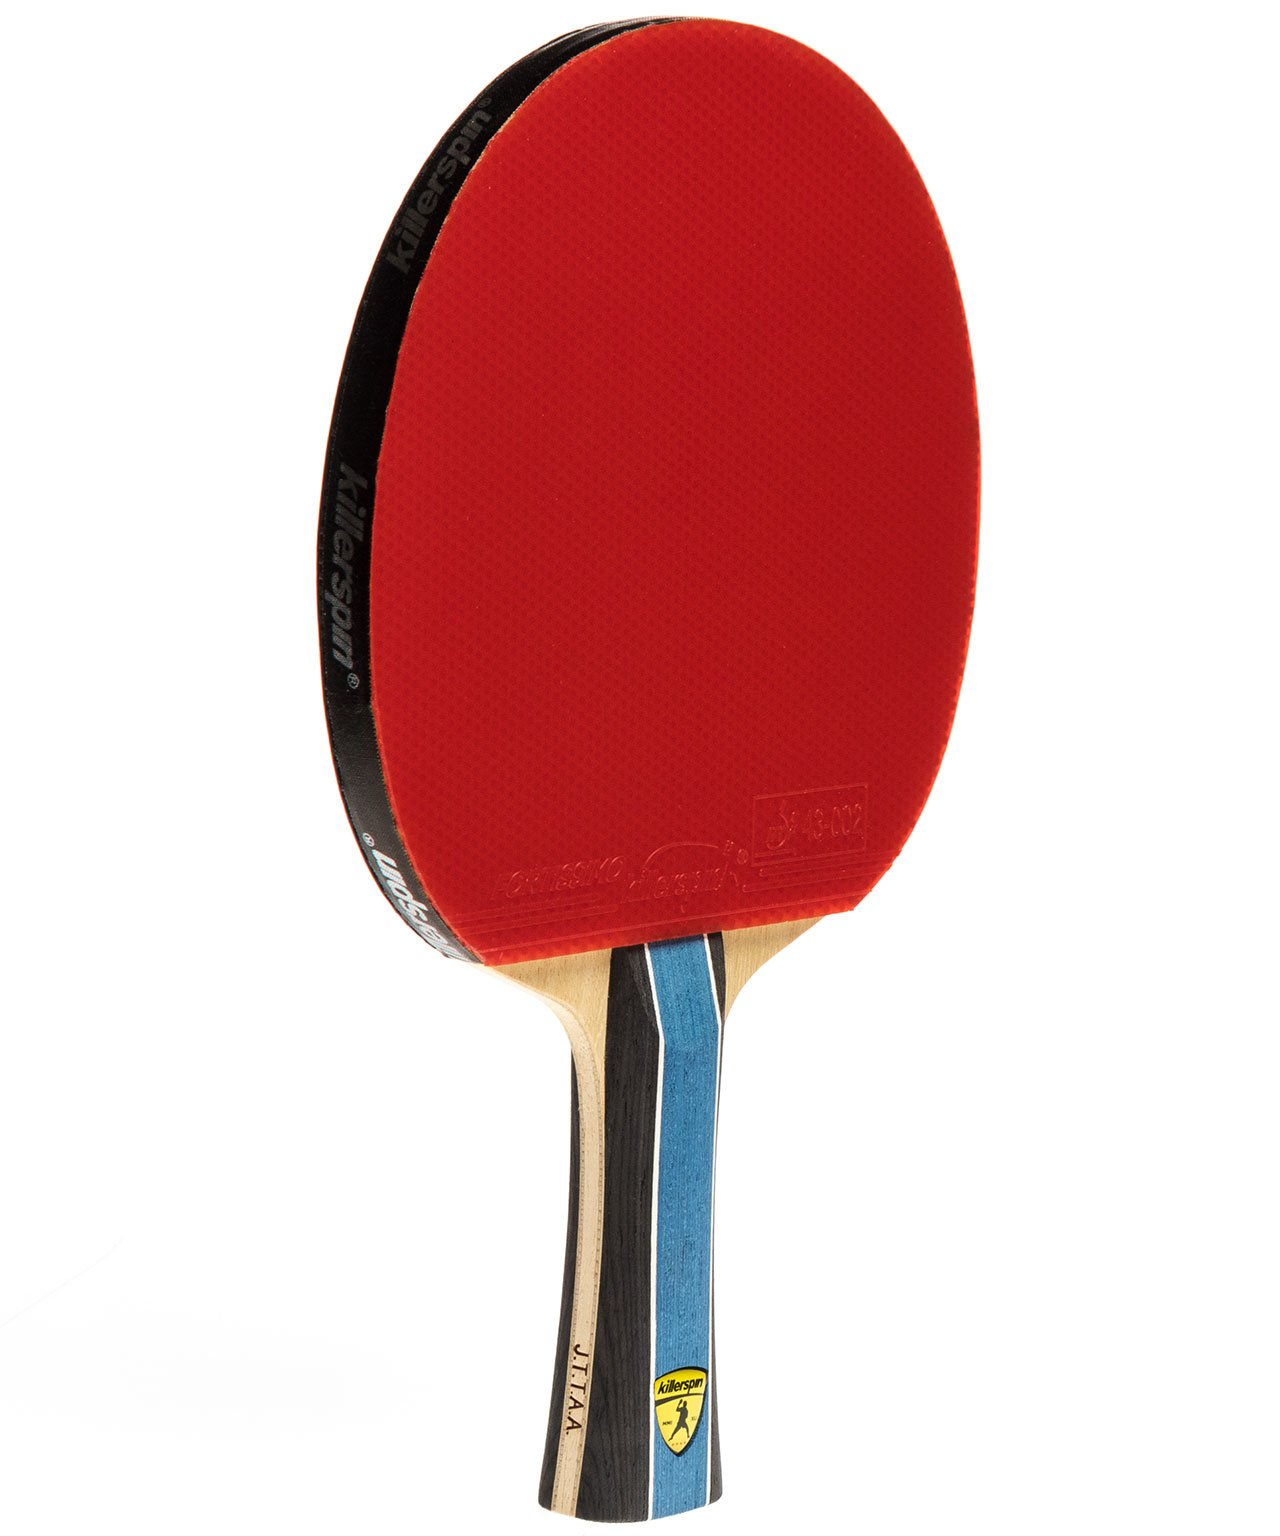 Killerspin Ping Pong Paddle Kido 5A RTG Premium - Flared Red Fortissimo Rubber